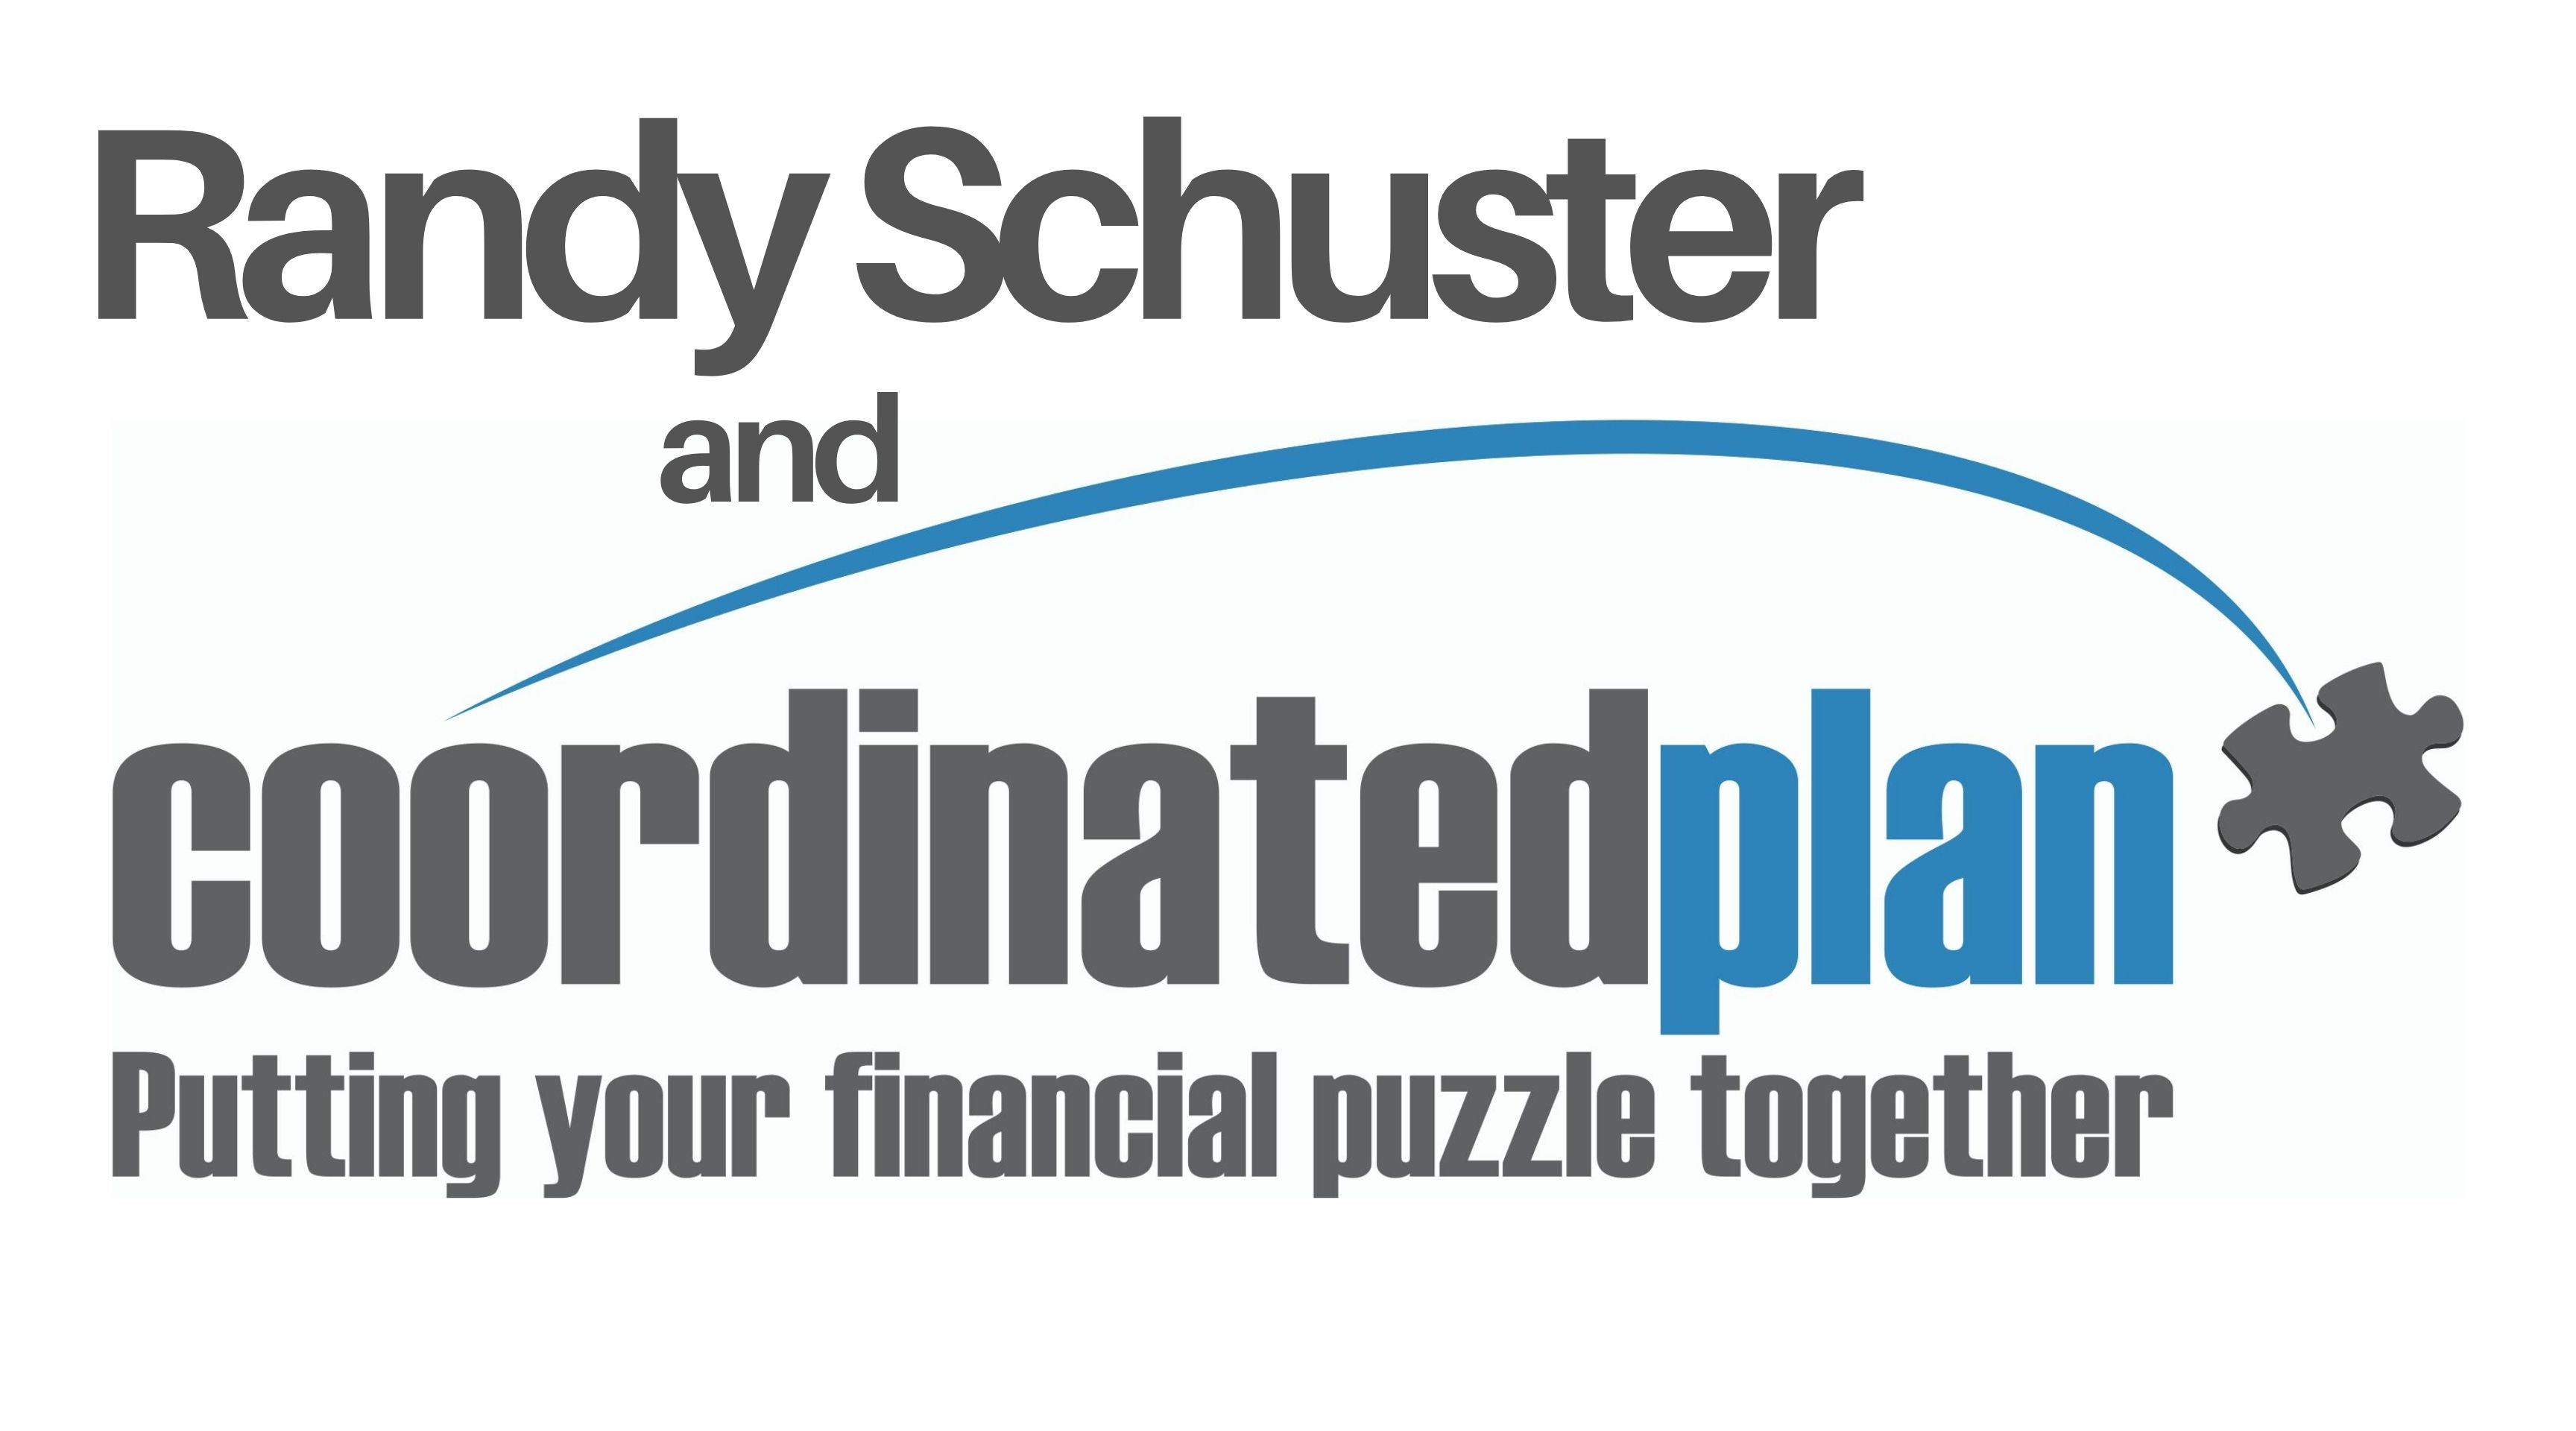 Randy Schuster and Coordinated Plan